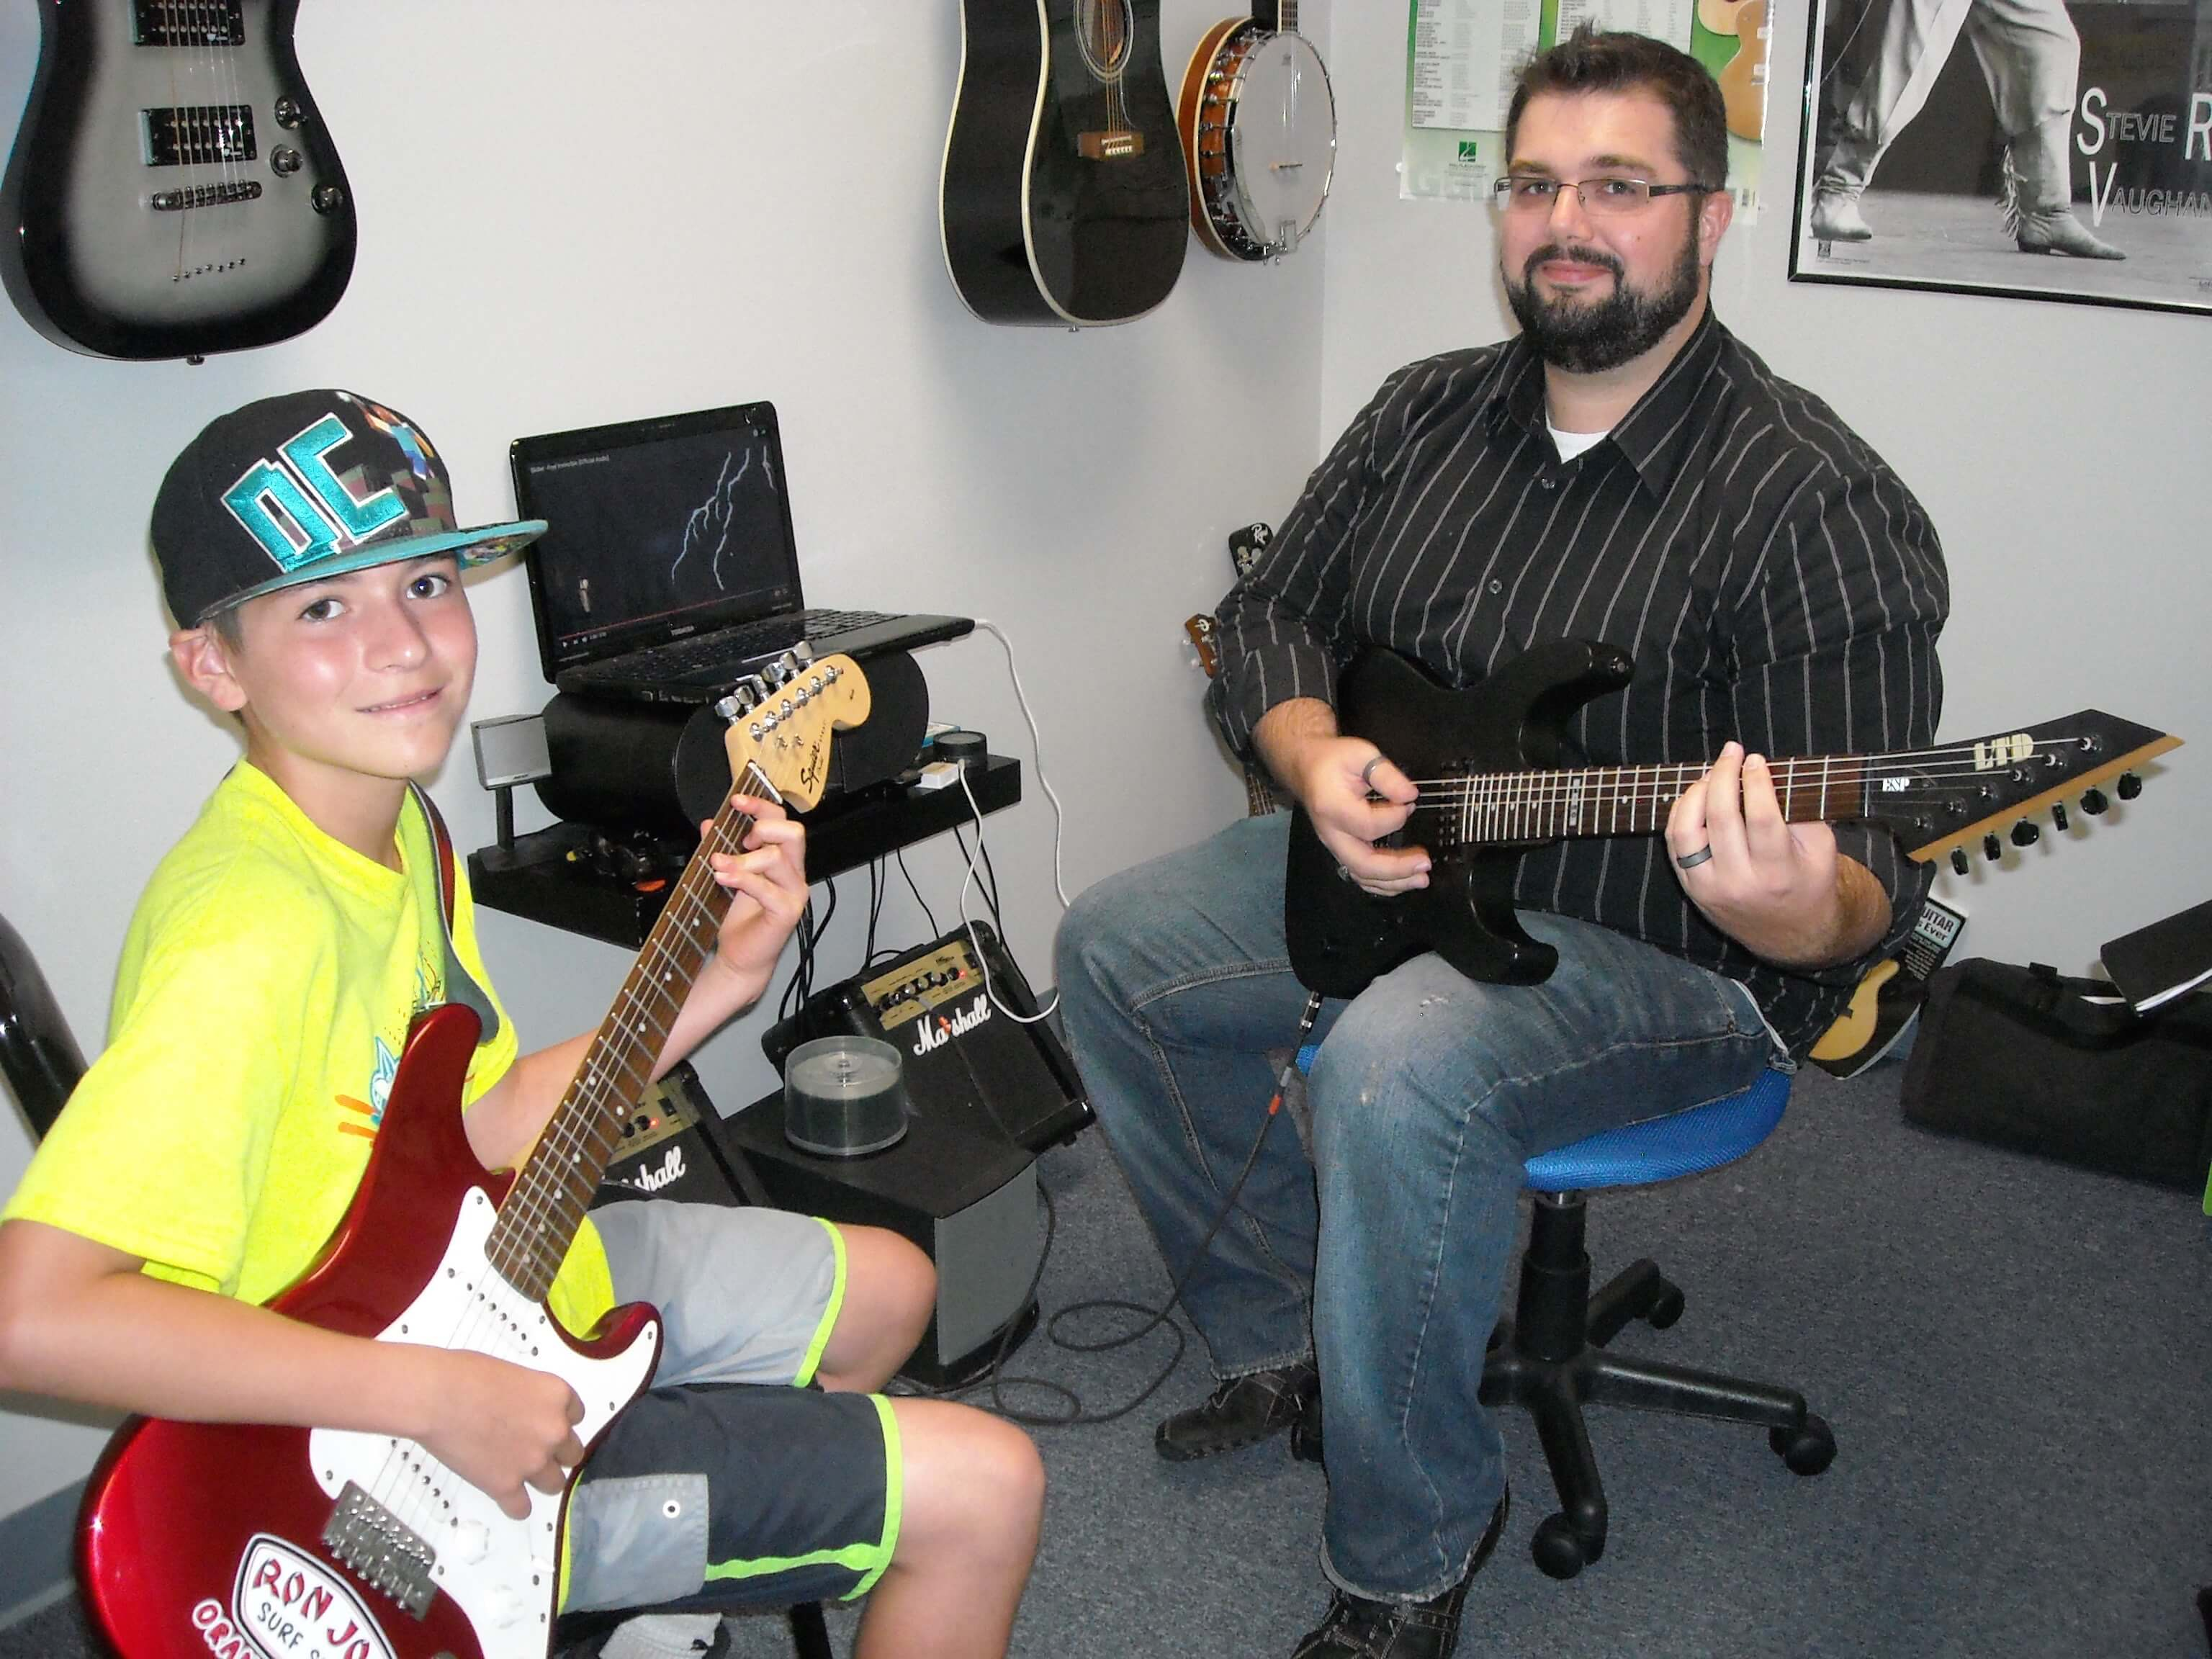 guitar and bass lessons near me in conway ar